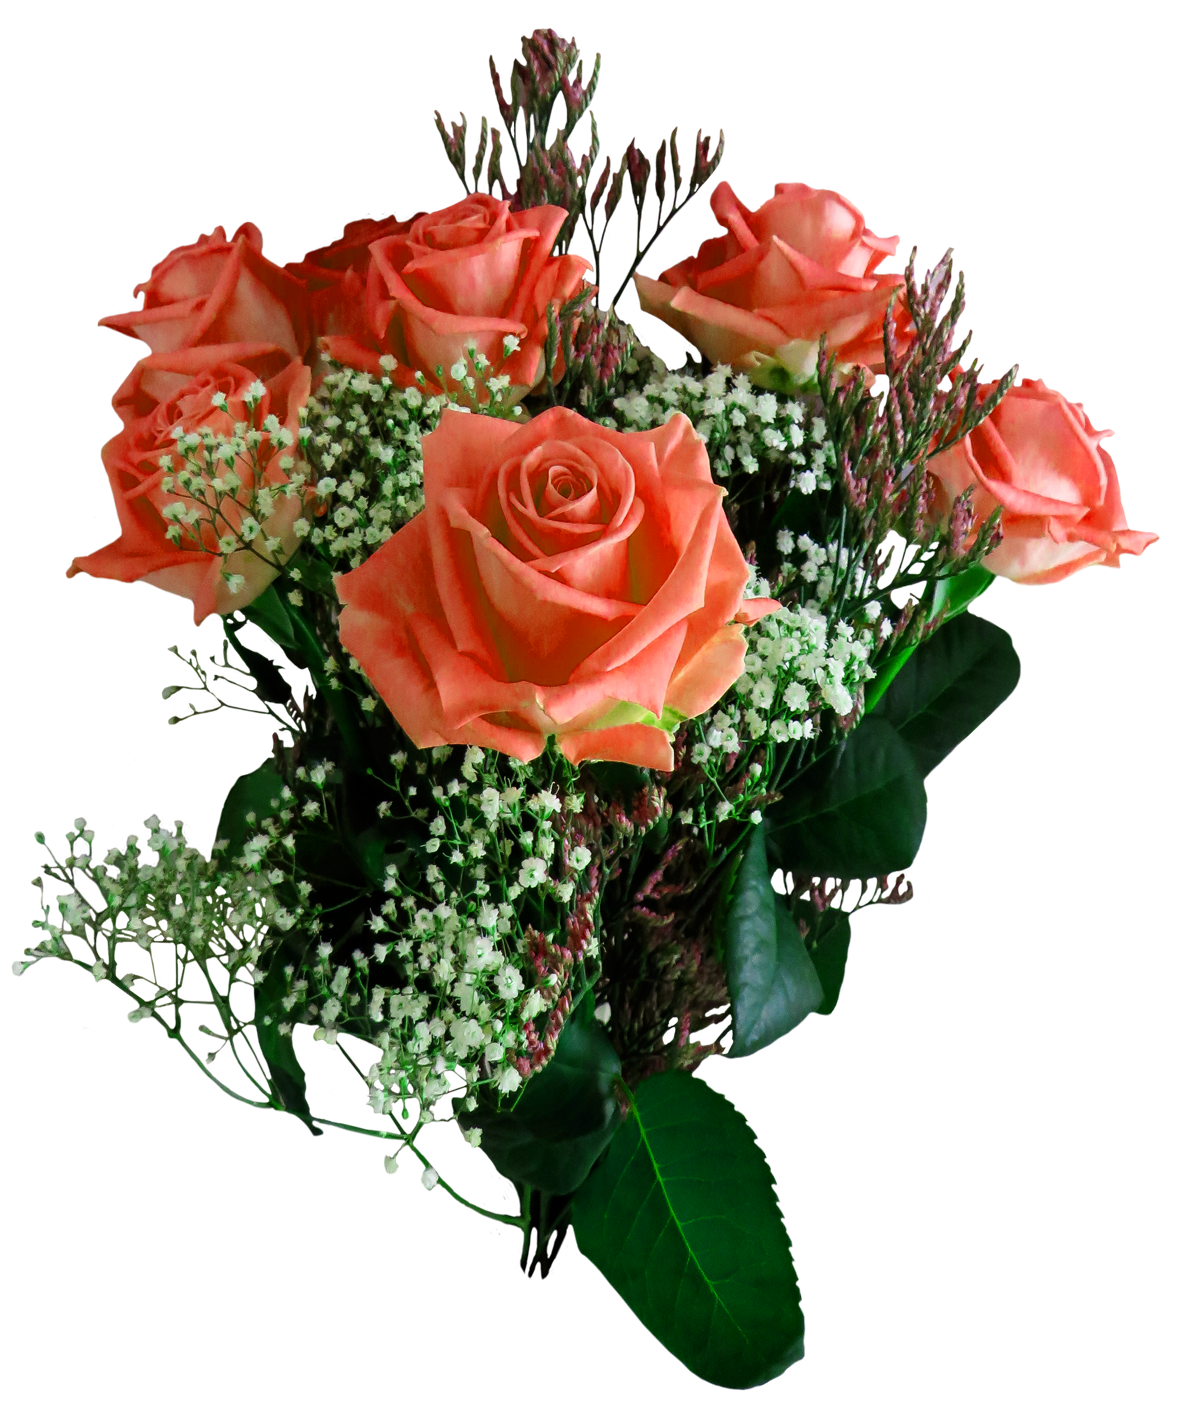 Images pngpix rose flower. Transparent png bouquet of flowers jpg library